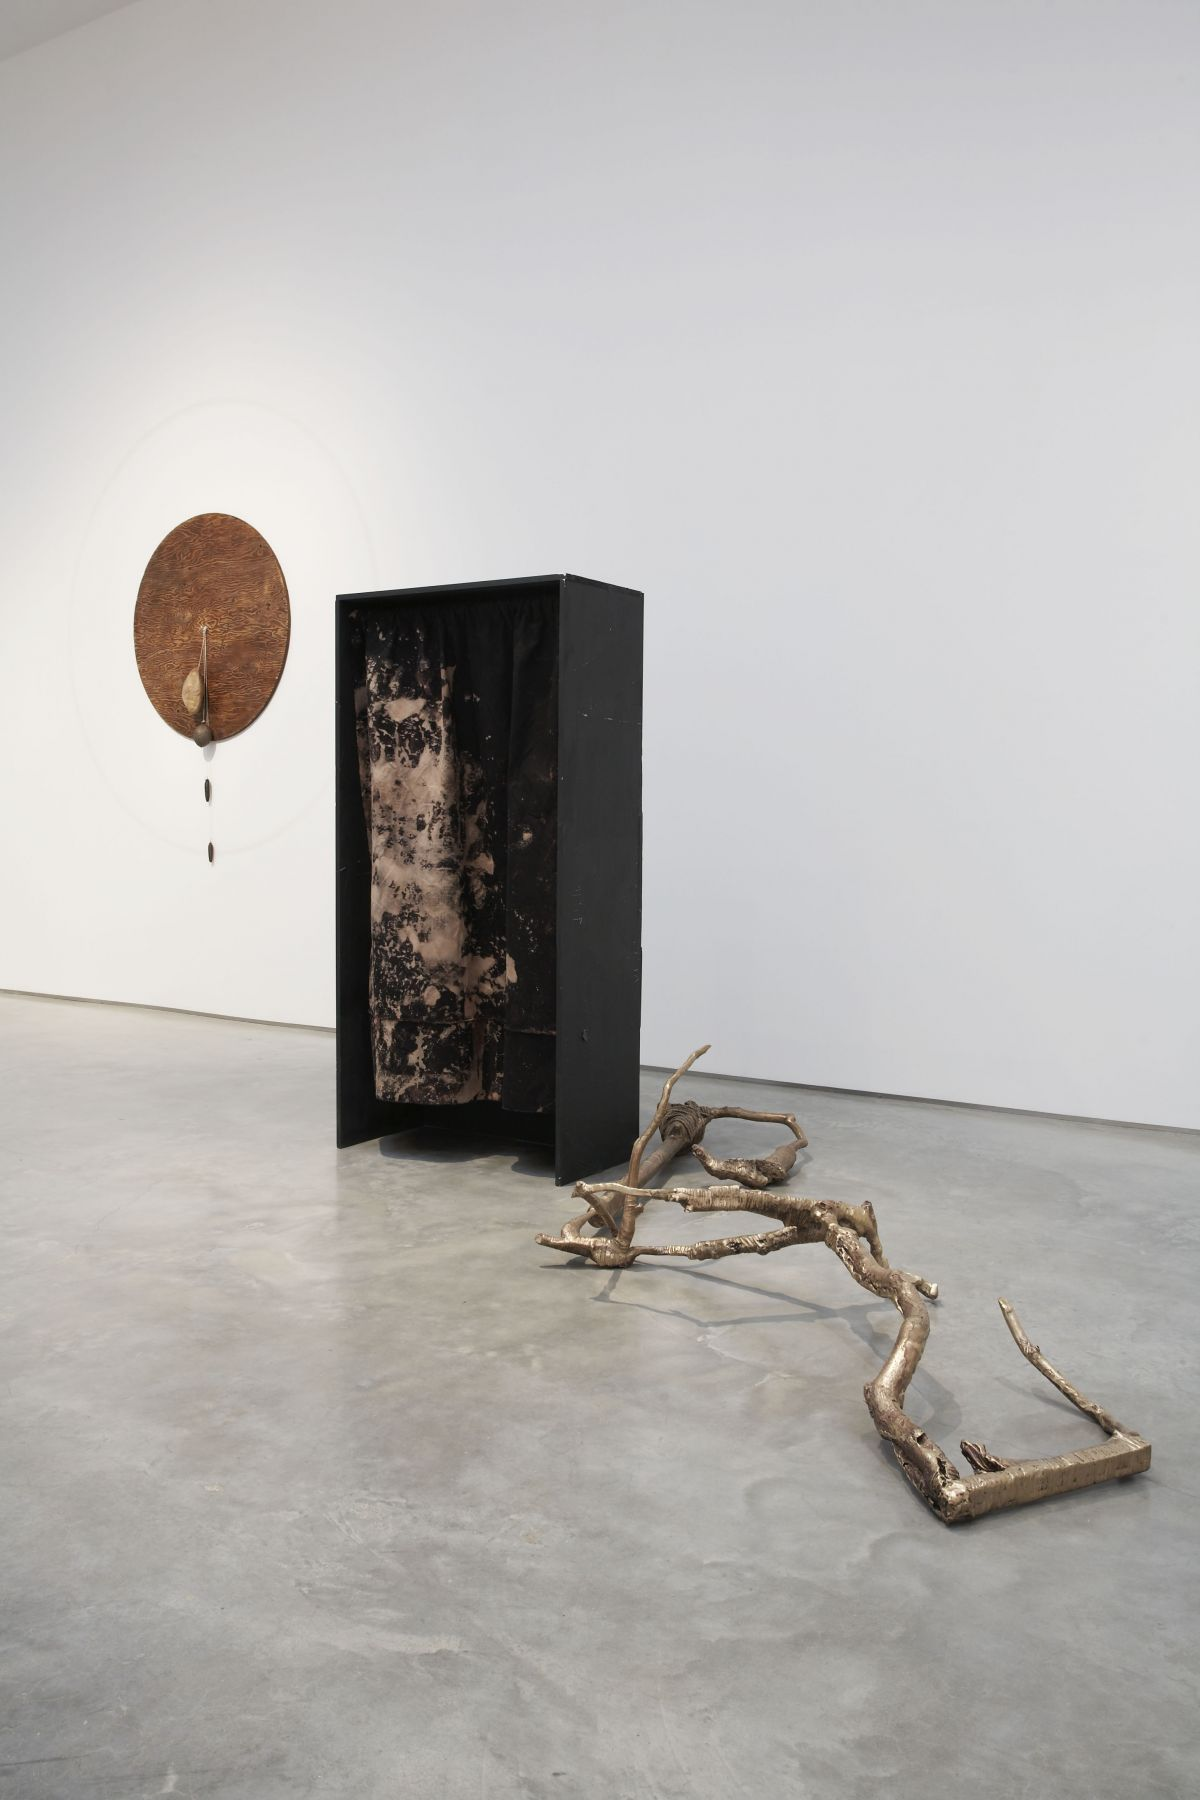 Jay Heikes: Like a Broken Record (Installation View), Marianne Boesky Gallery, 2007